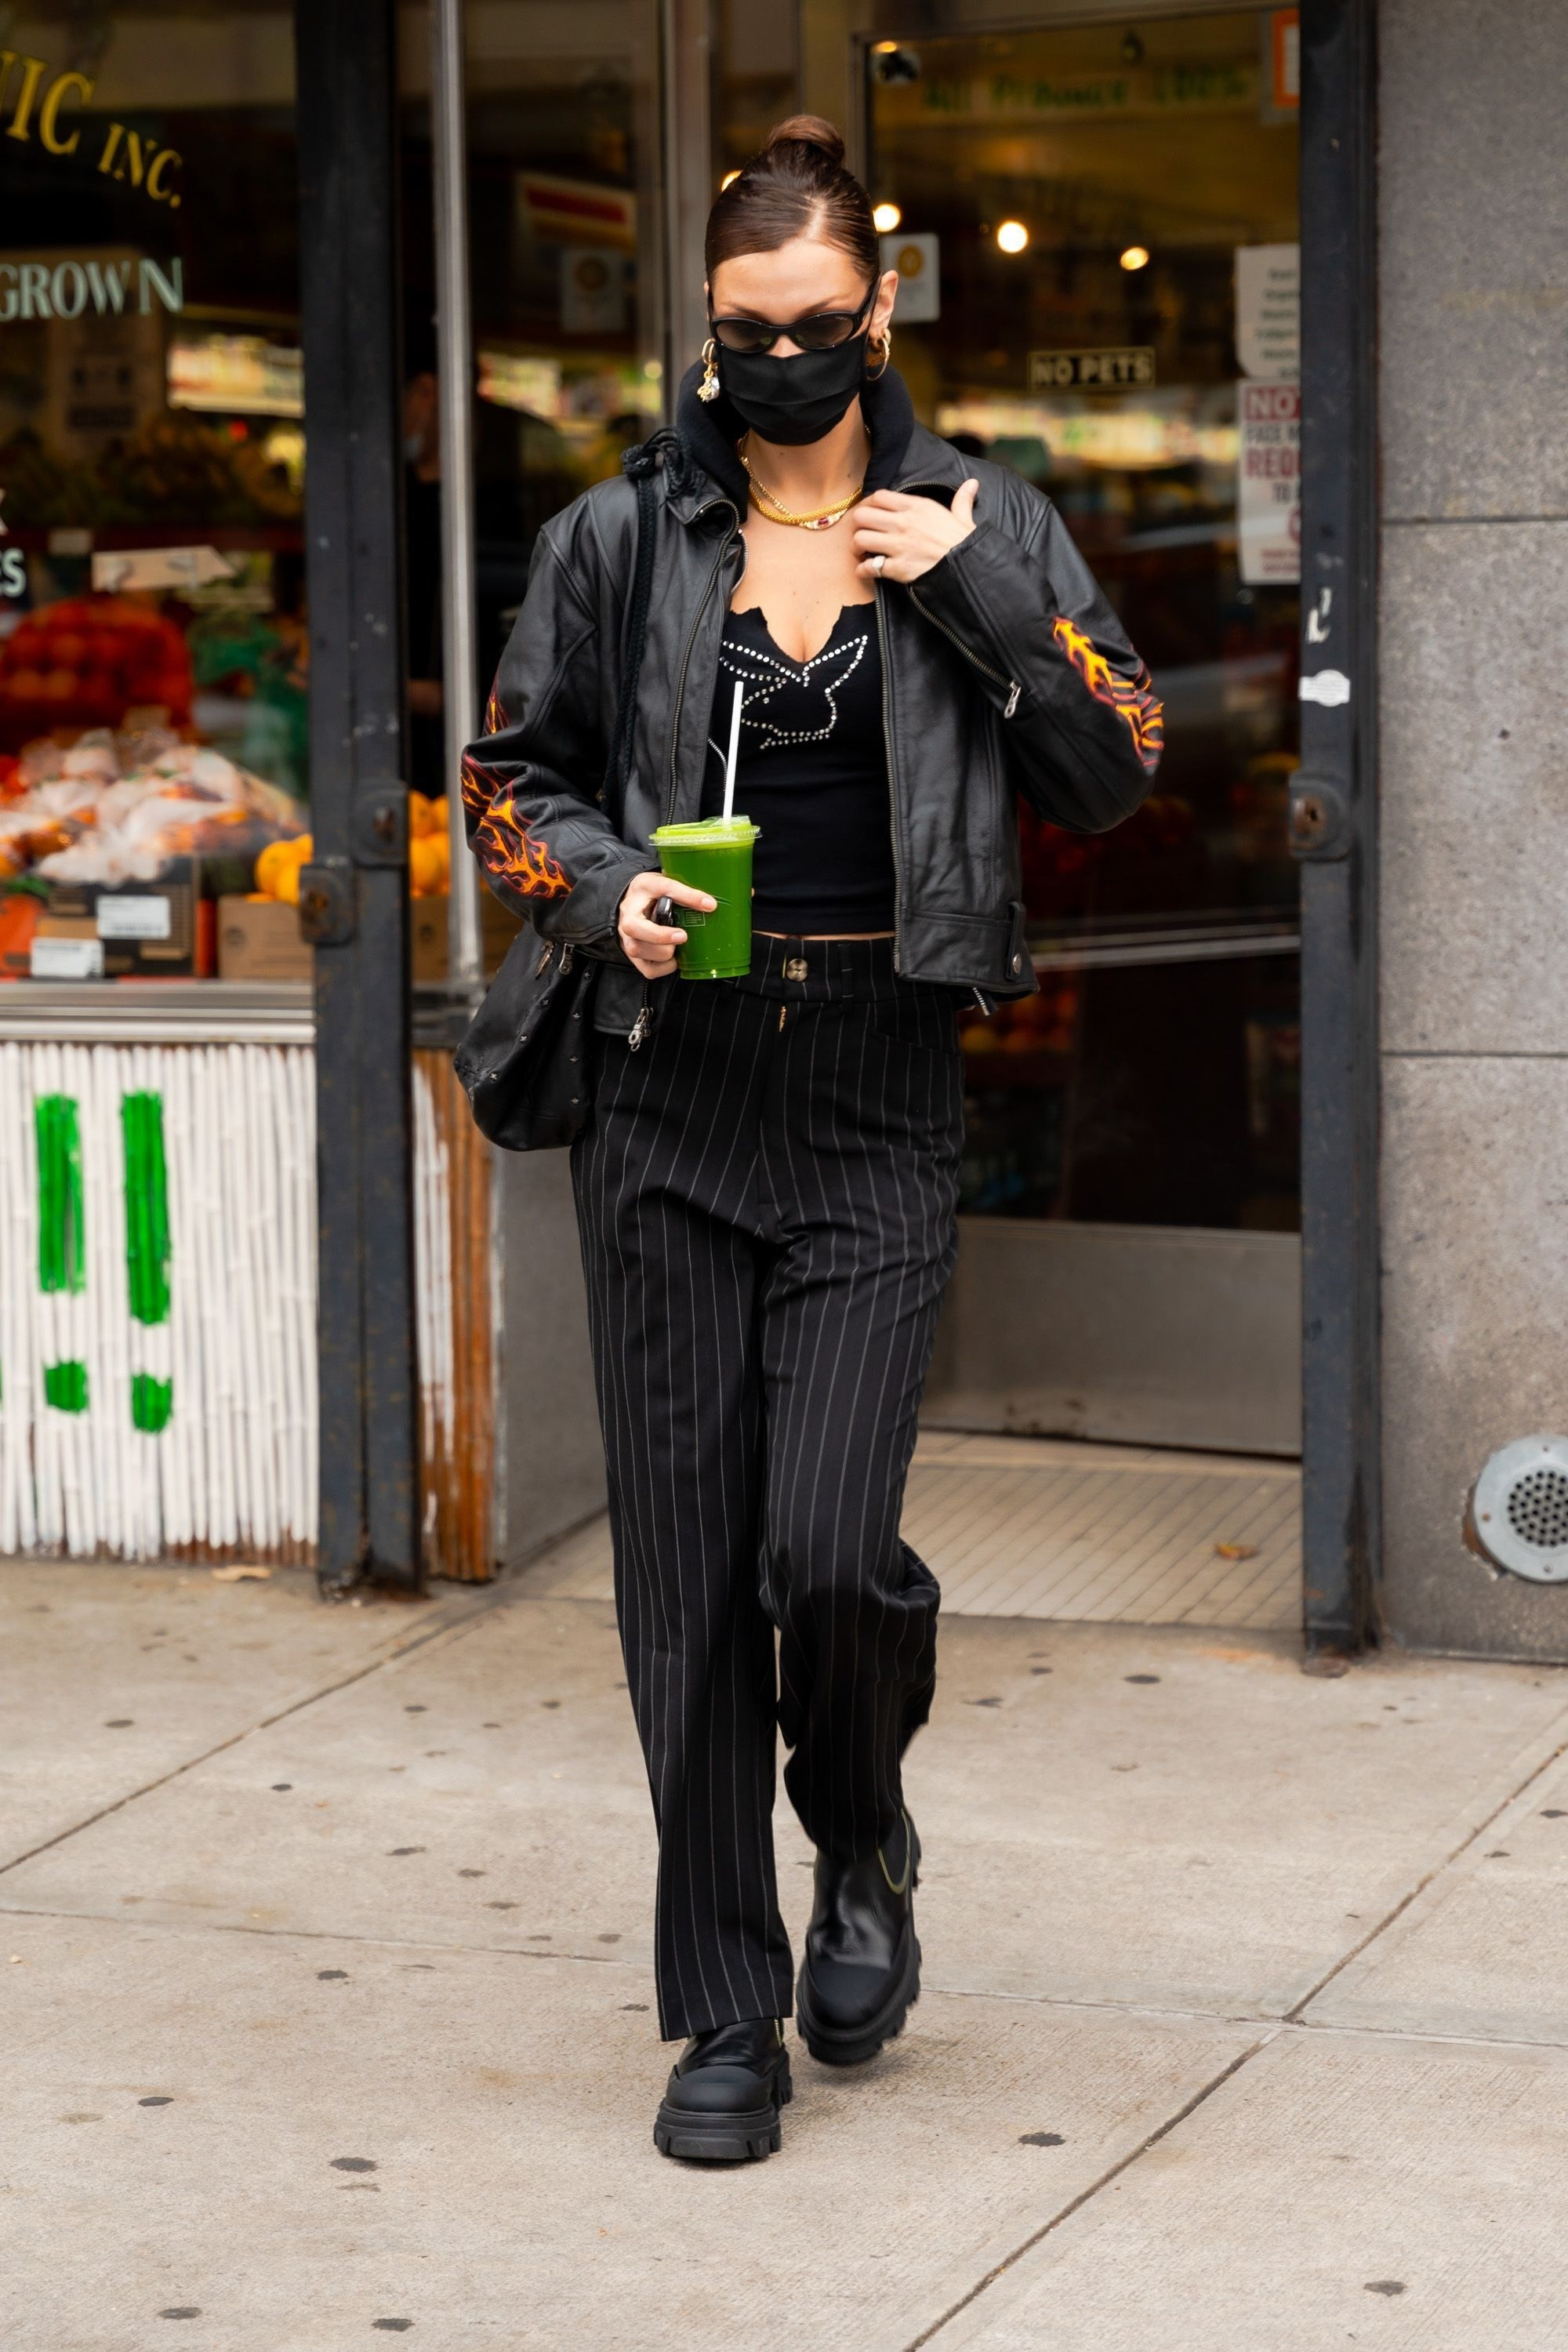 Bella Hadid in a leather jacket and striped pants holding a green juice